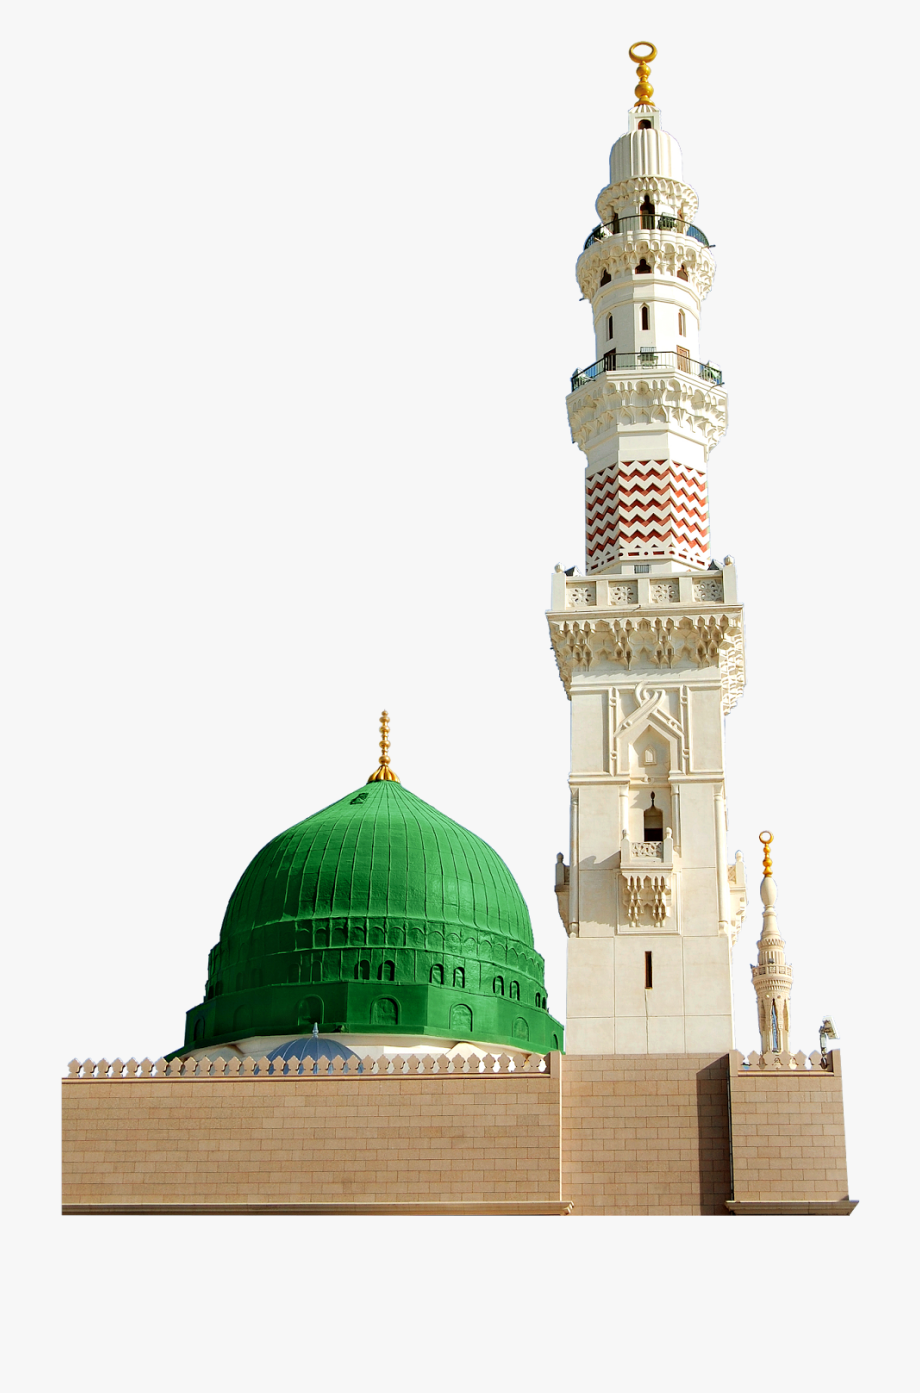 Masjid Nabawi Hd Free Download Pictures Ⓒ.